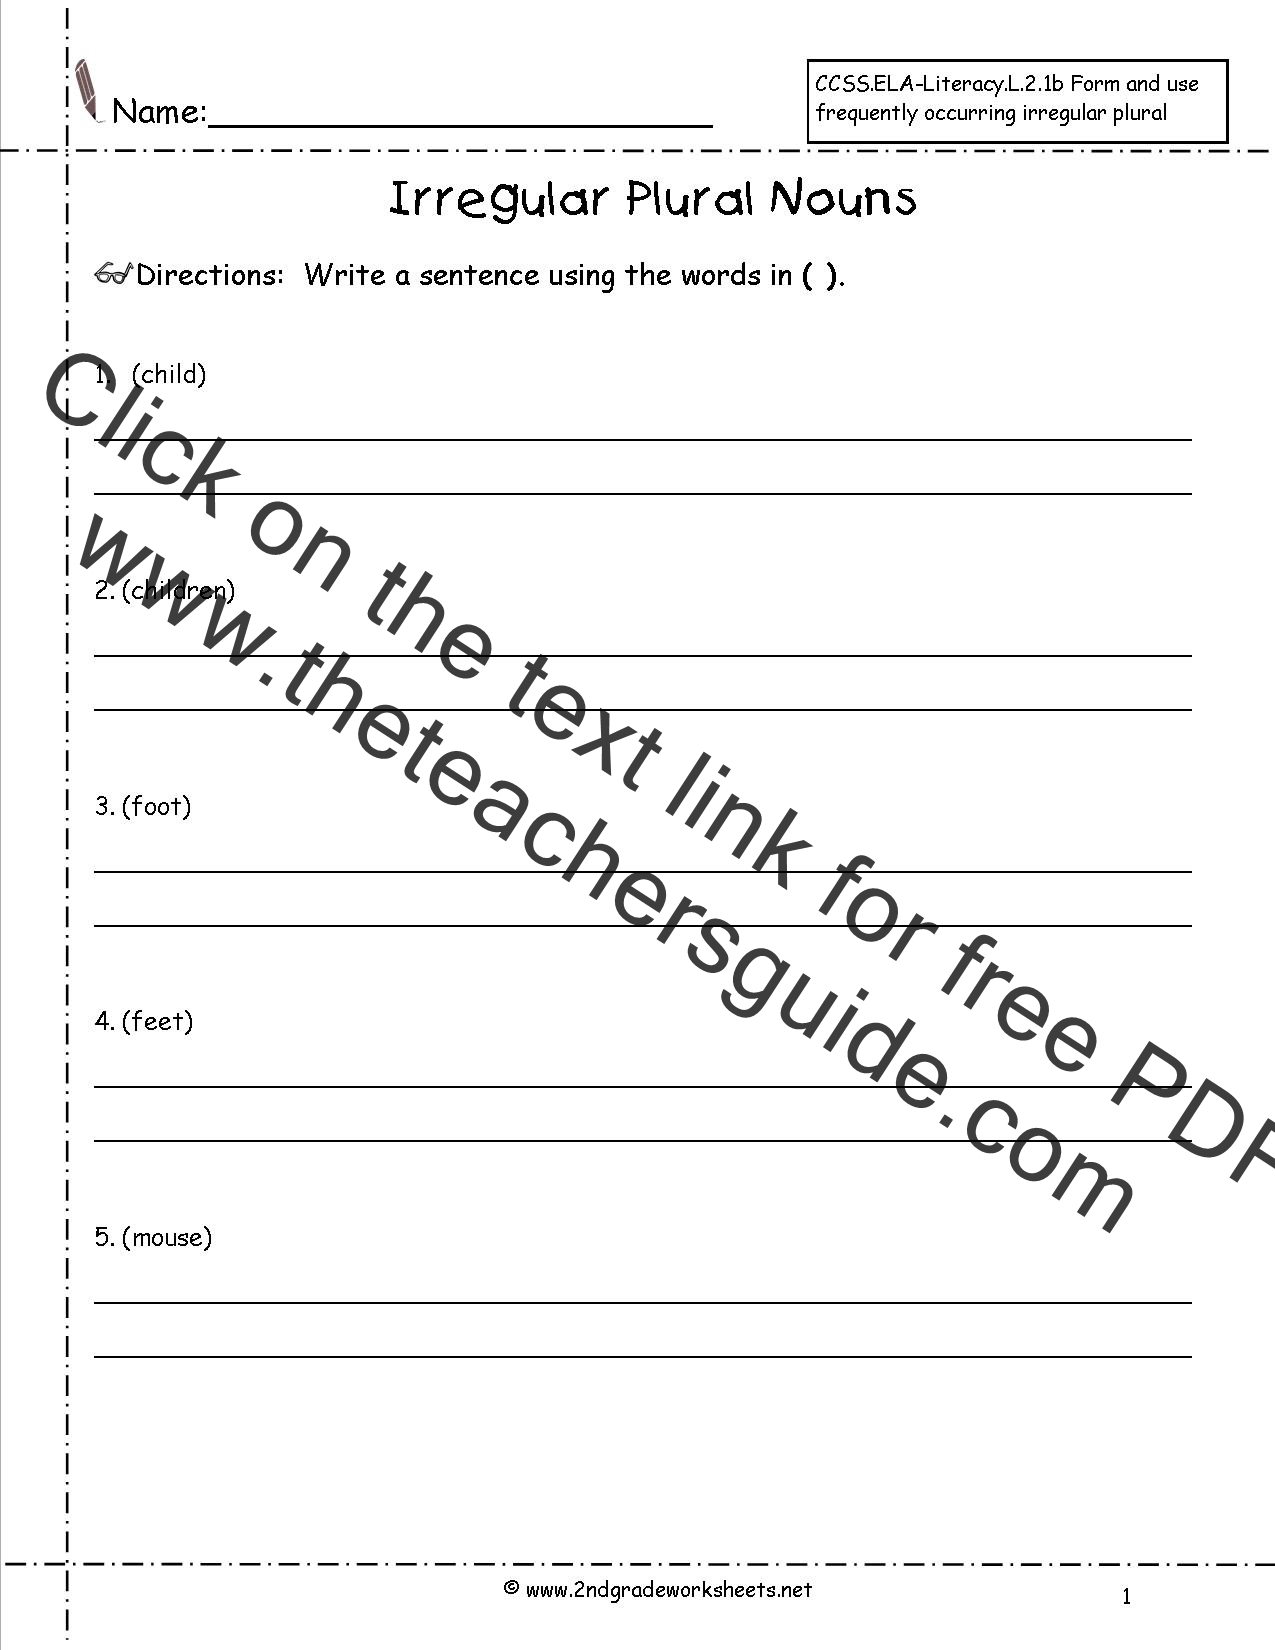 Singular and Plural Nouns Worksheets from The Teachers Guide – Noun Worksheets 4th Grade